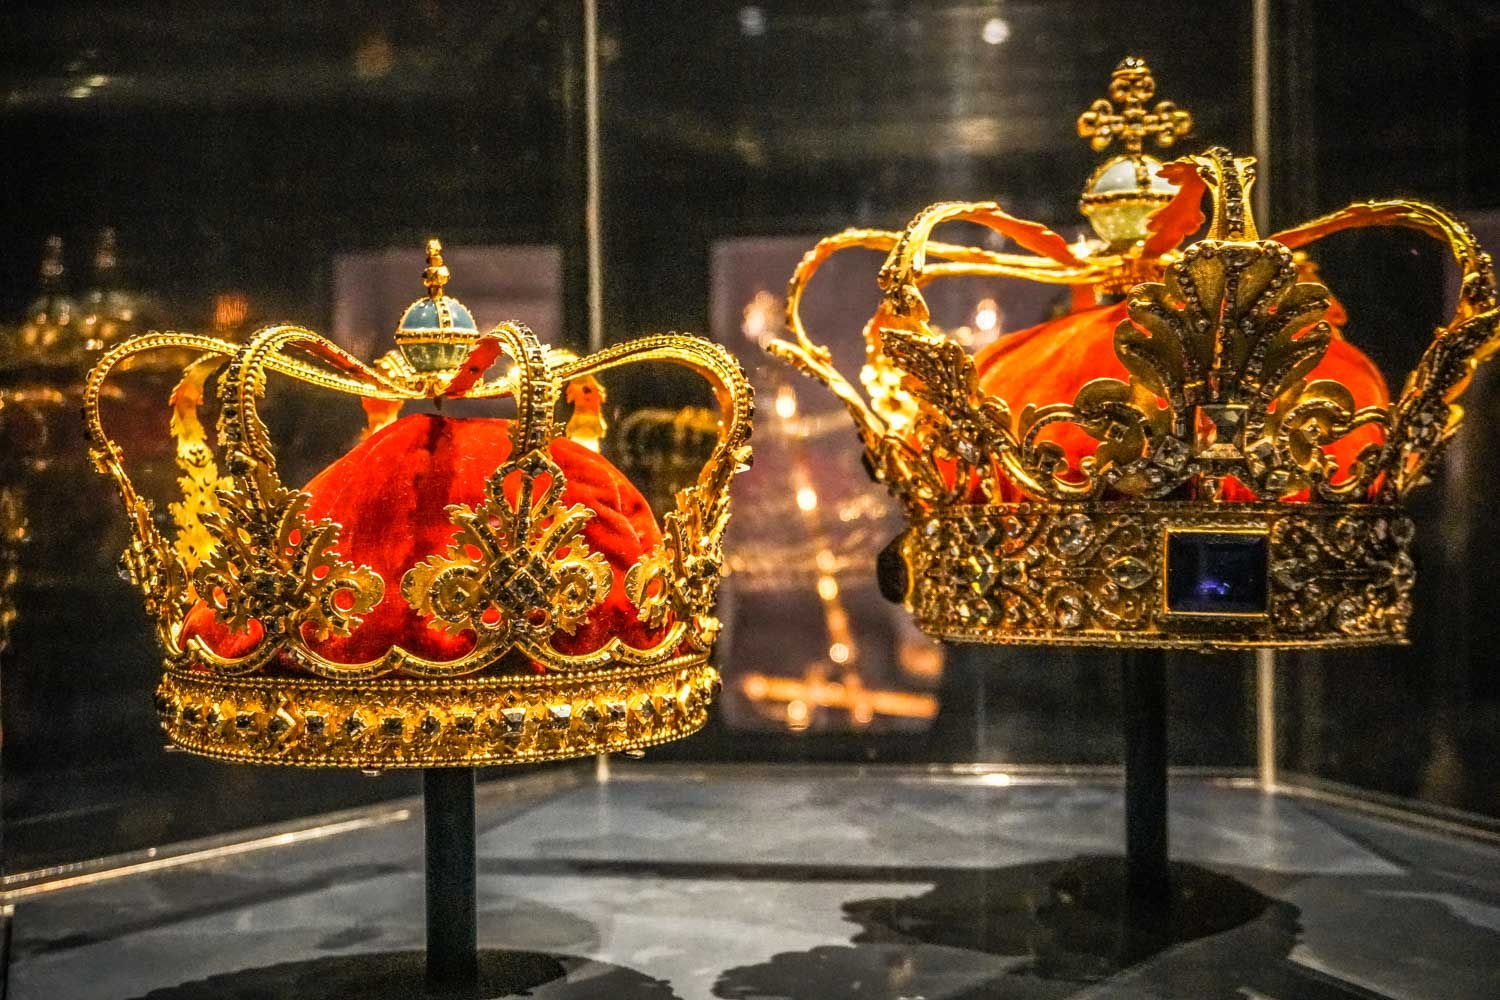 Crown Jewels at Rosenborg Slot